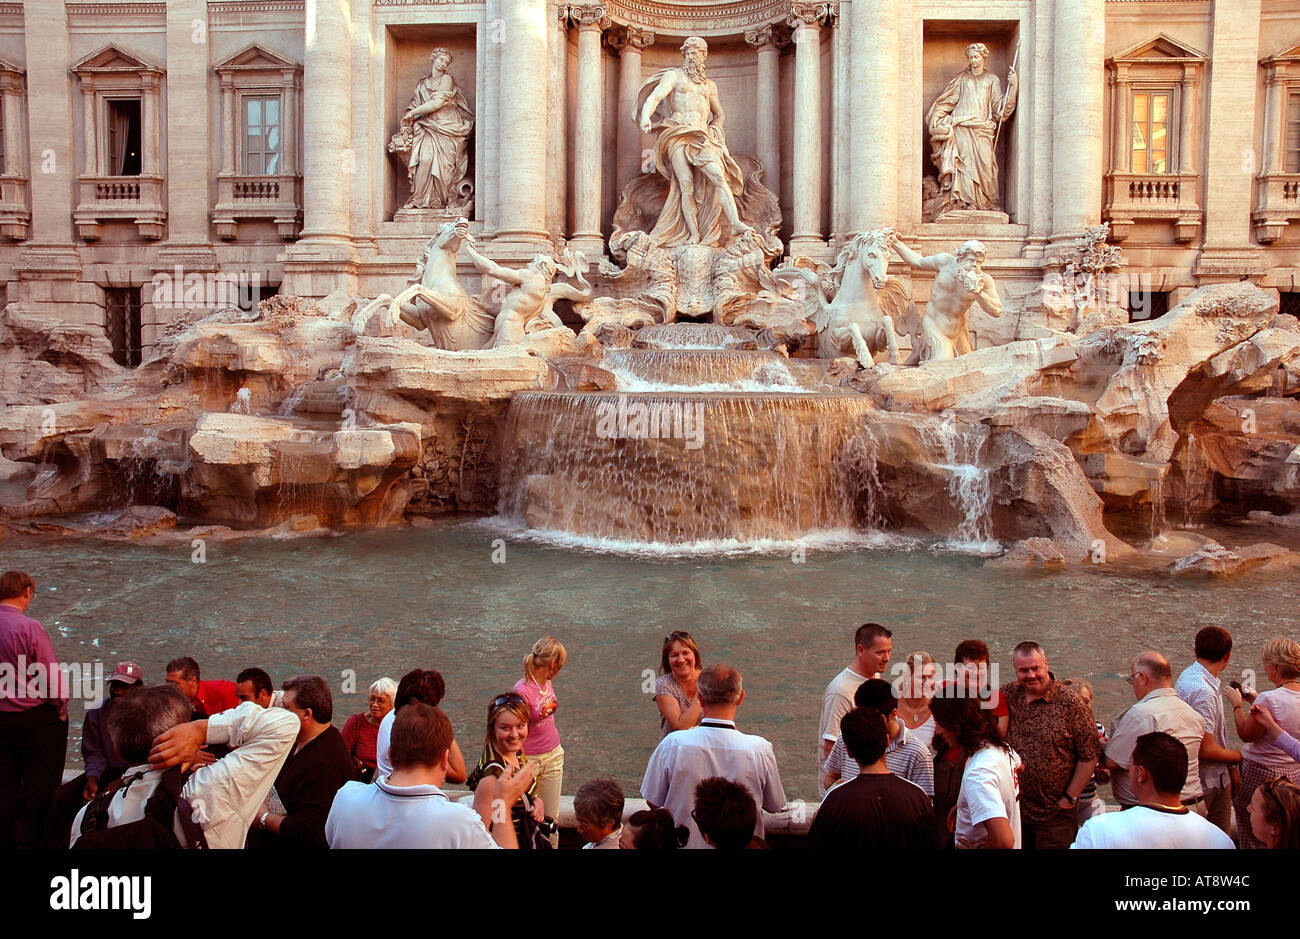 The Trevi fountain associated with Fellini's 'La Dolce Vita' attracts hordes of tourists. It was created by Nicolo Salvi in 1762 - Stock Image